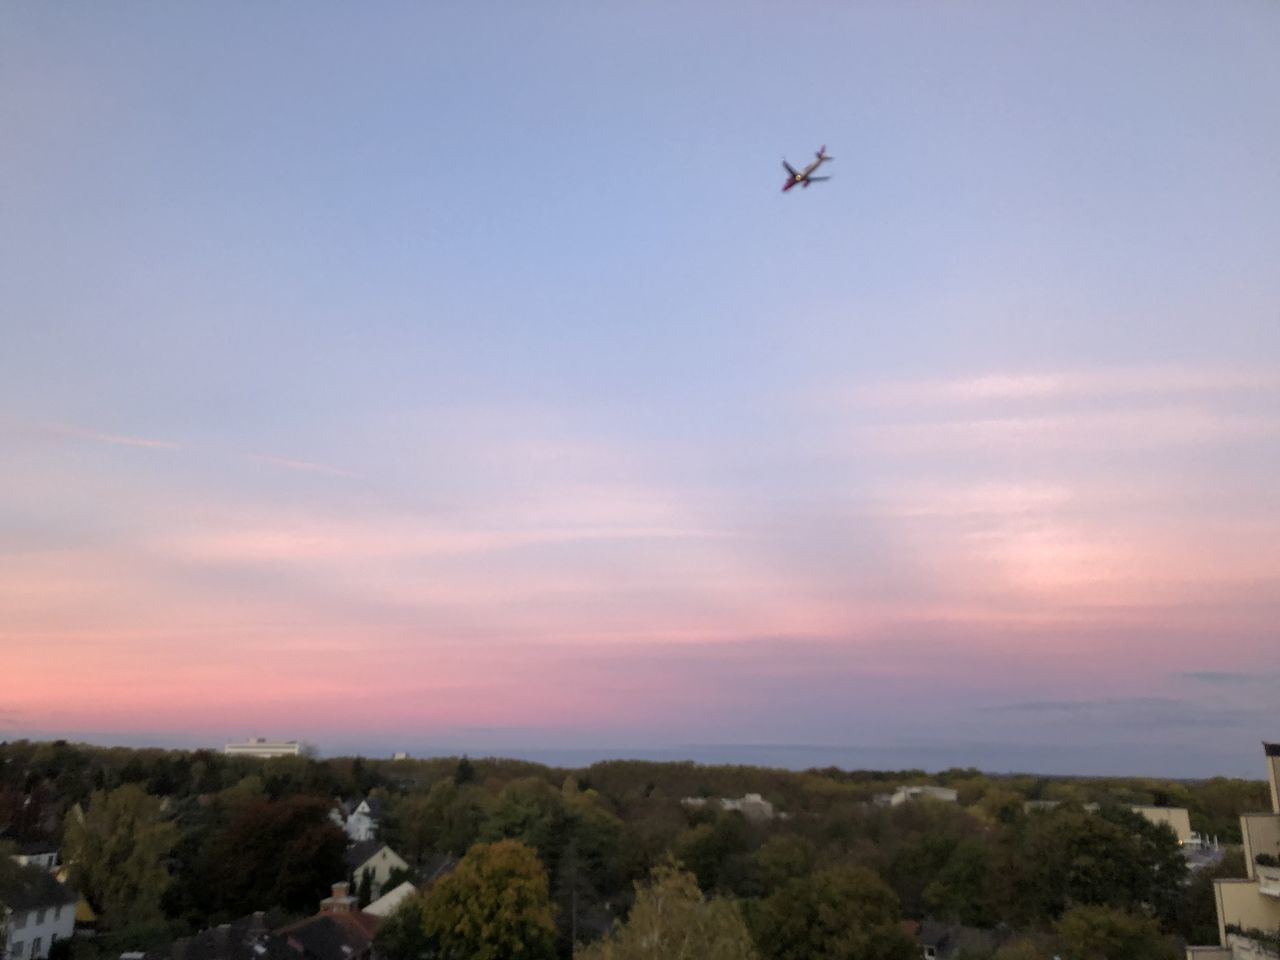 flying, sky, air vehicle, airplane, mode of transportation, transportation, mid-air, sunset, no people, beauty in nature, nature, cloud - sky, scenics - nature, low angle view, tree, vertebrate, bird, outdoors, travel, plant